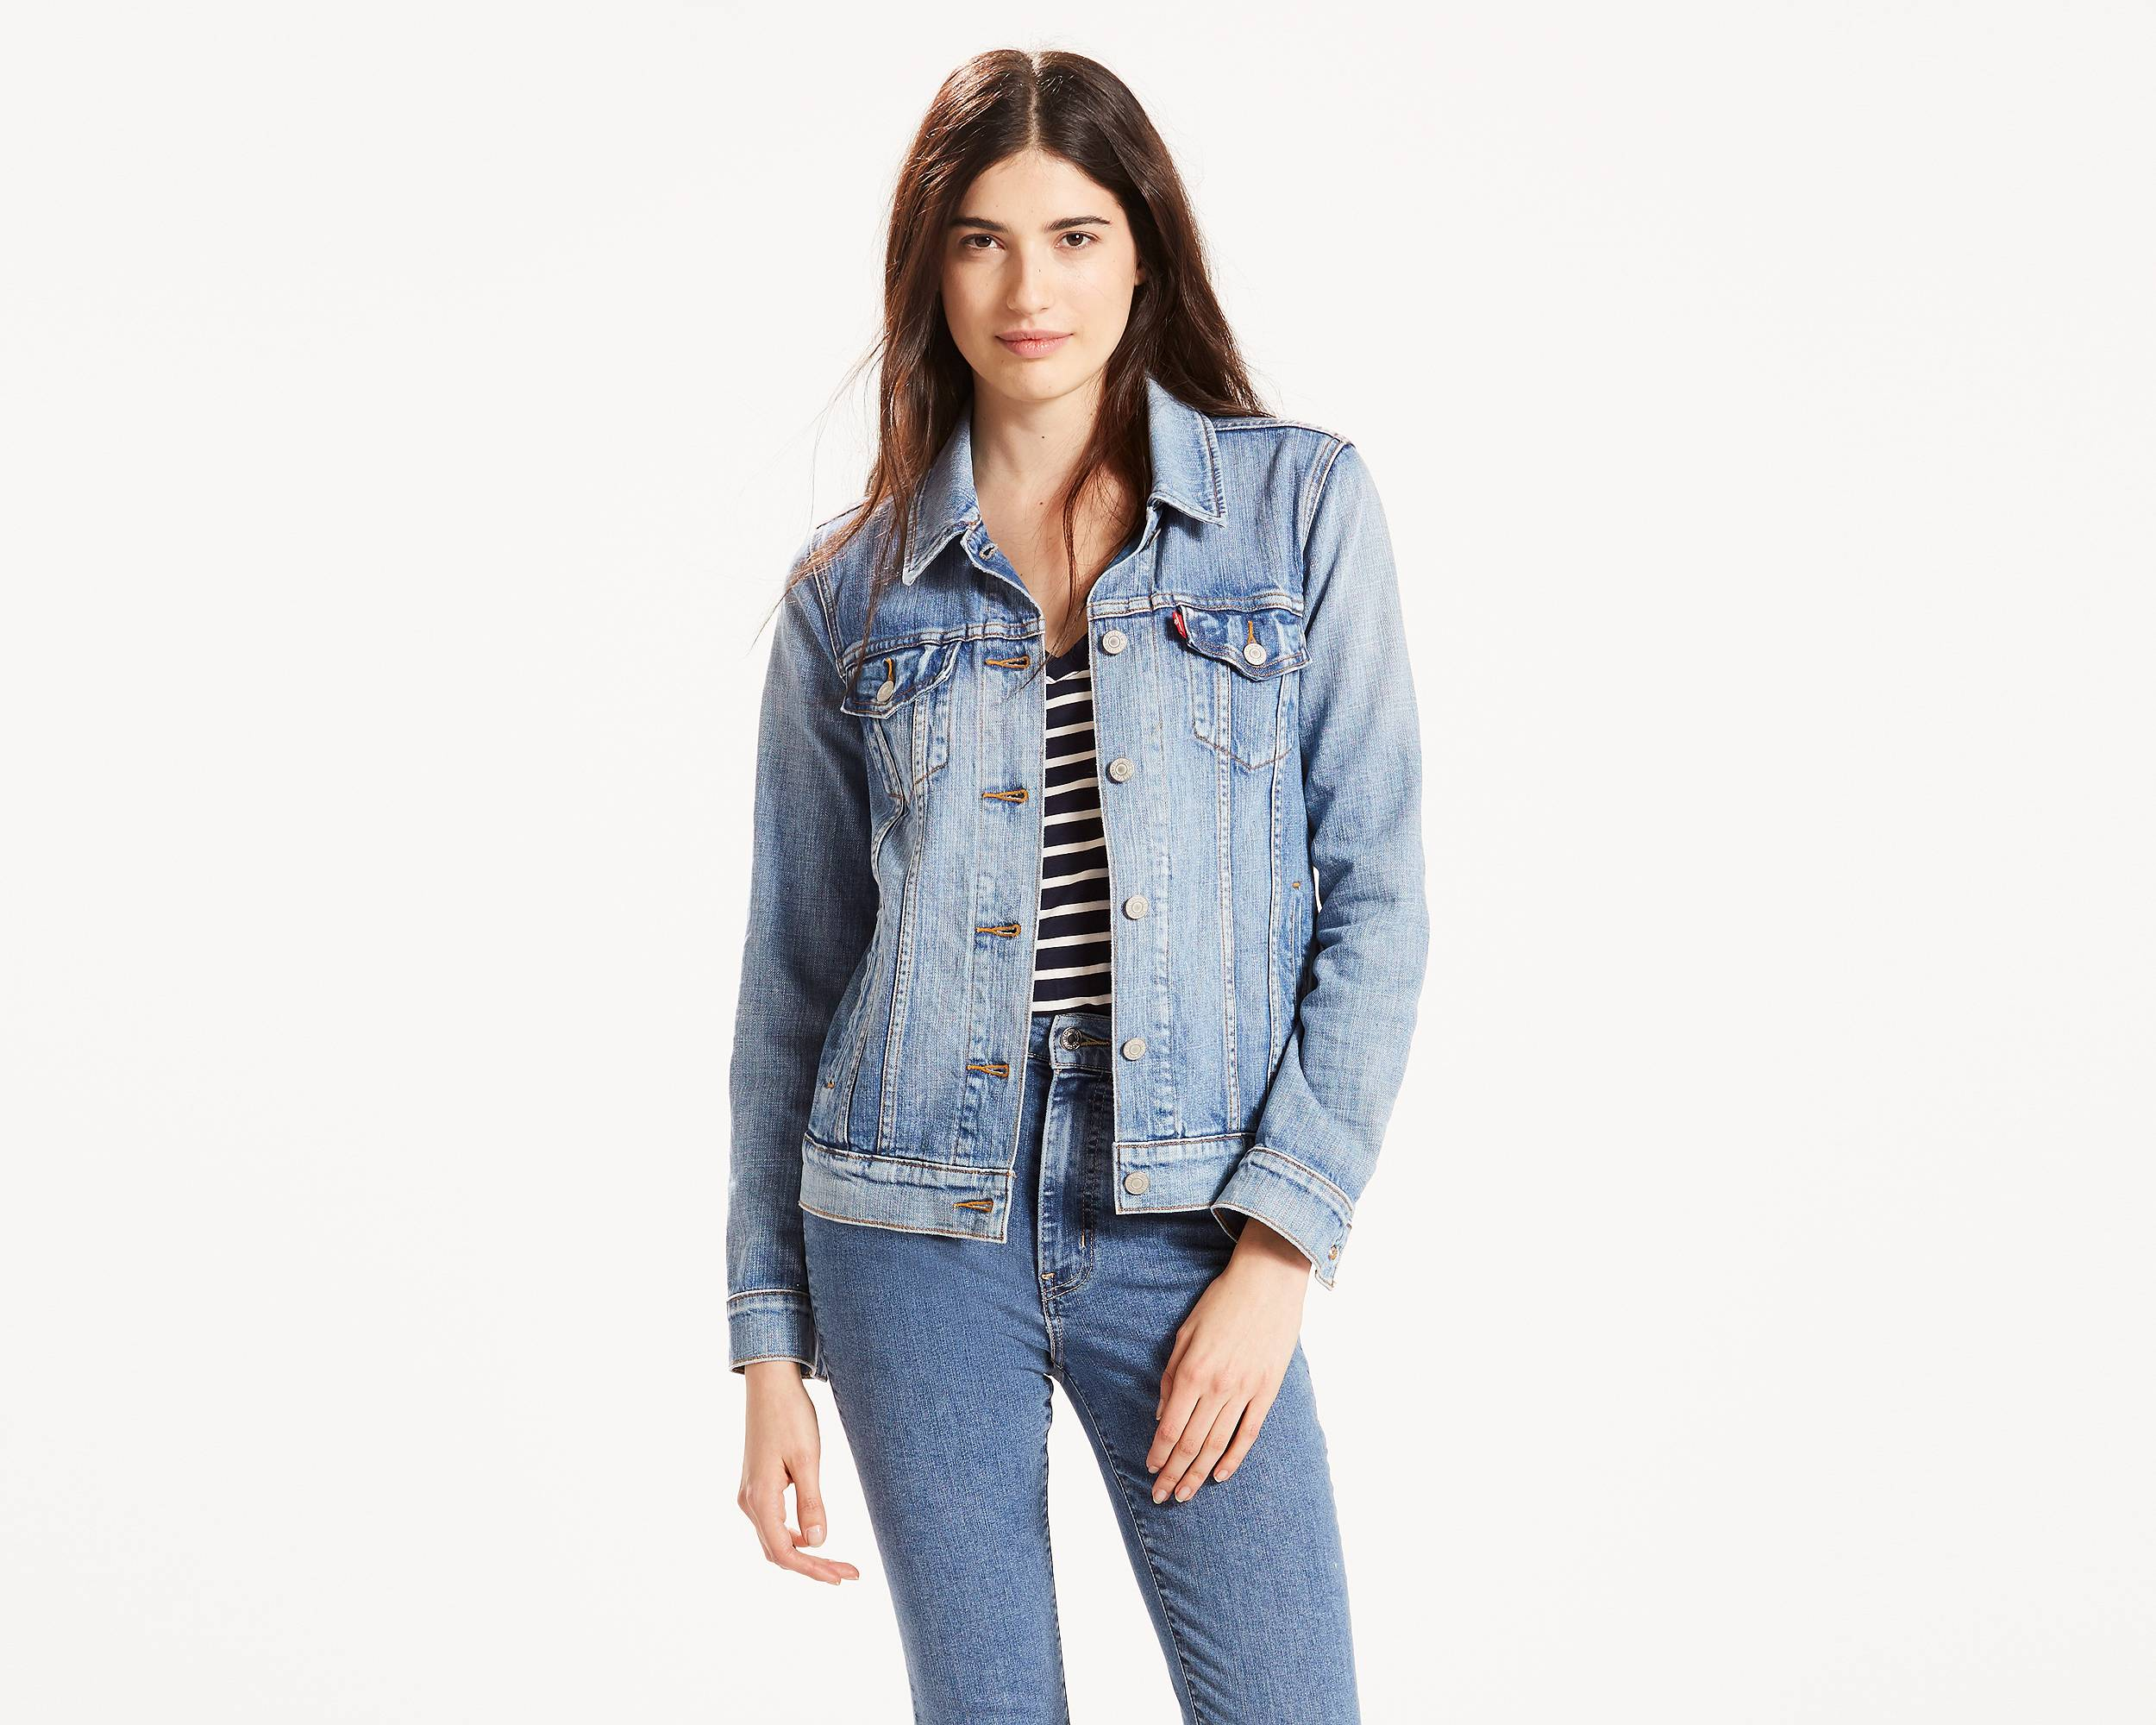 Jean Jackets for Women - Shop the Denim Trucker | Levi's®